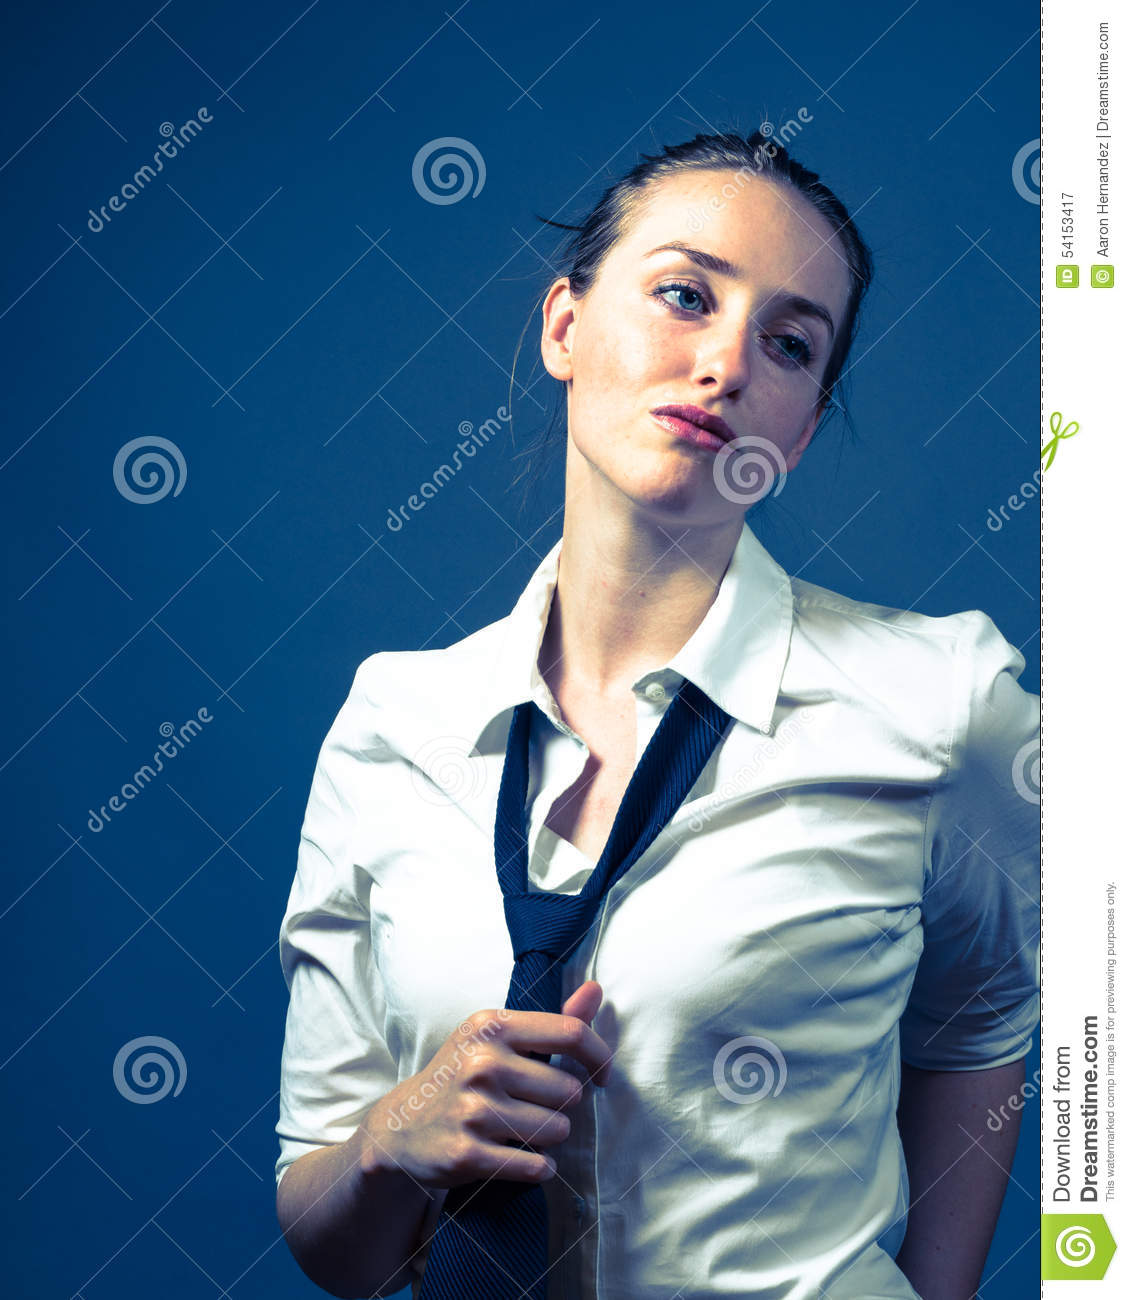 American Woman In White Shirt & Tie Stock Photo - Image: 54153417